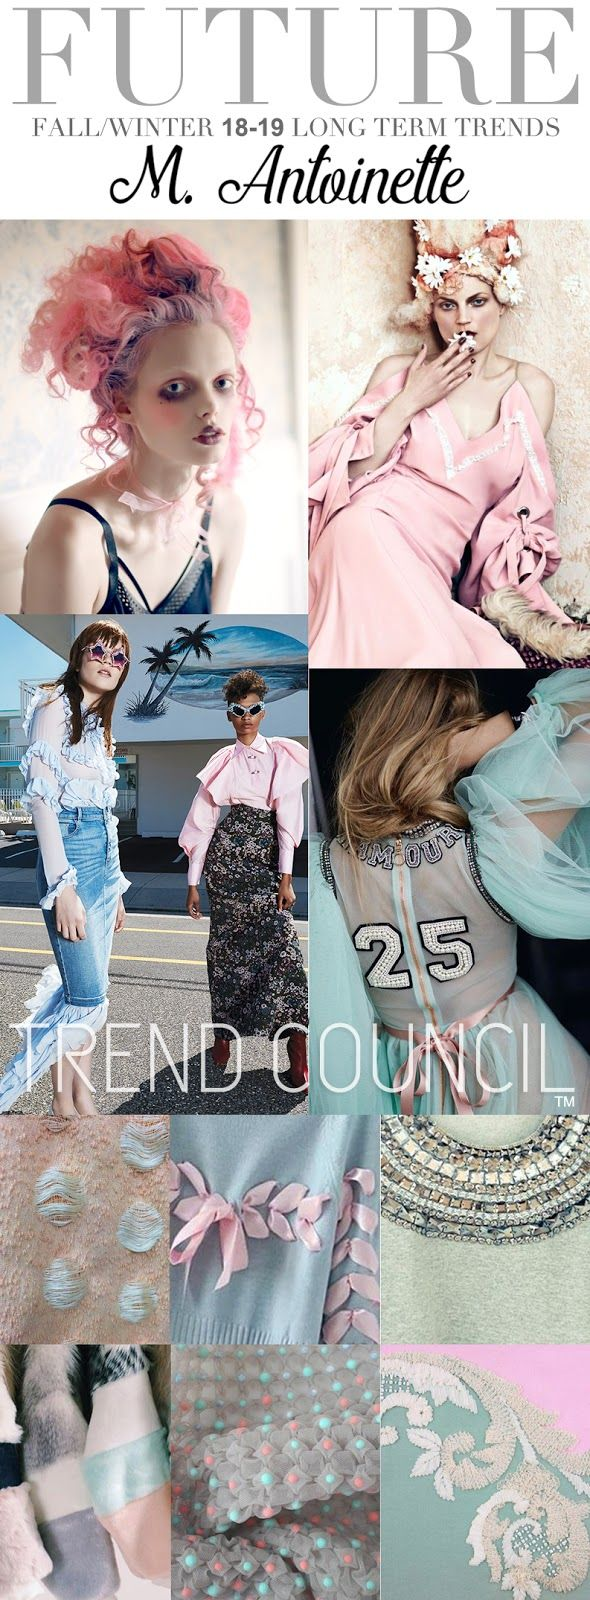 TRENDS // TREND COUNCIL - M. ANTOINETTE . FW 2018-19